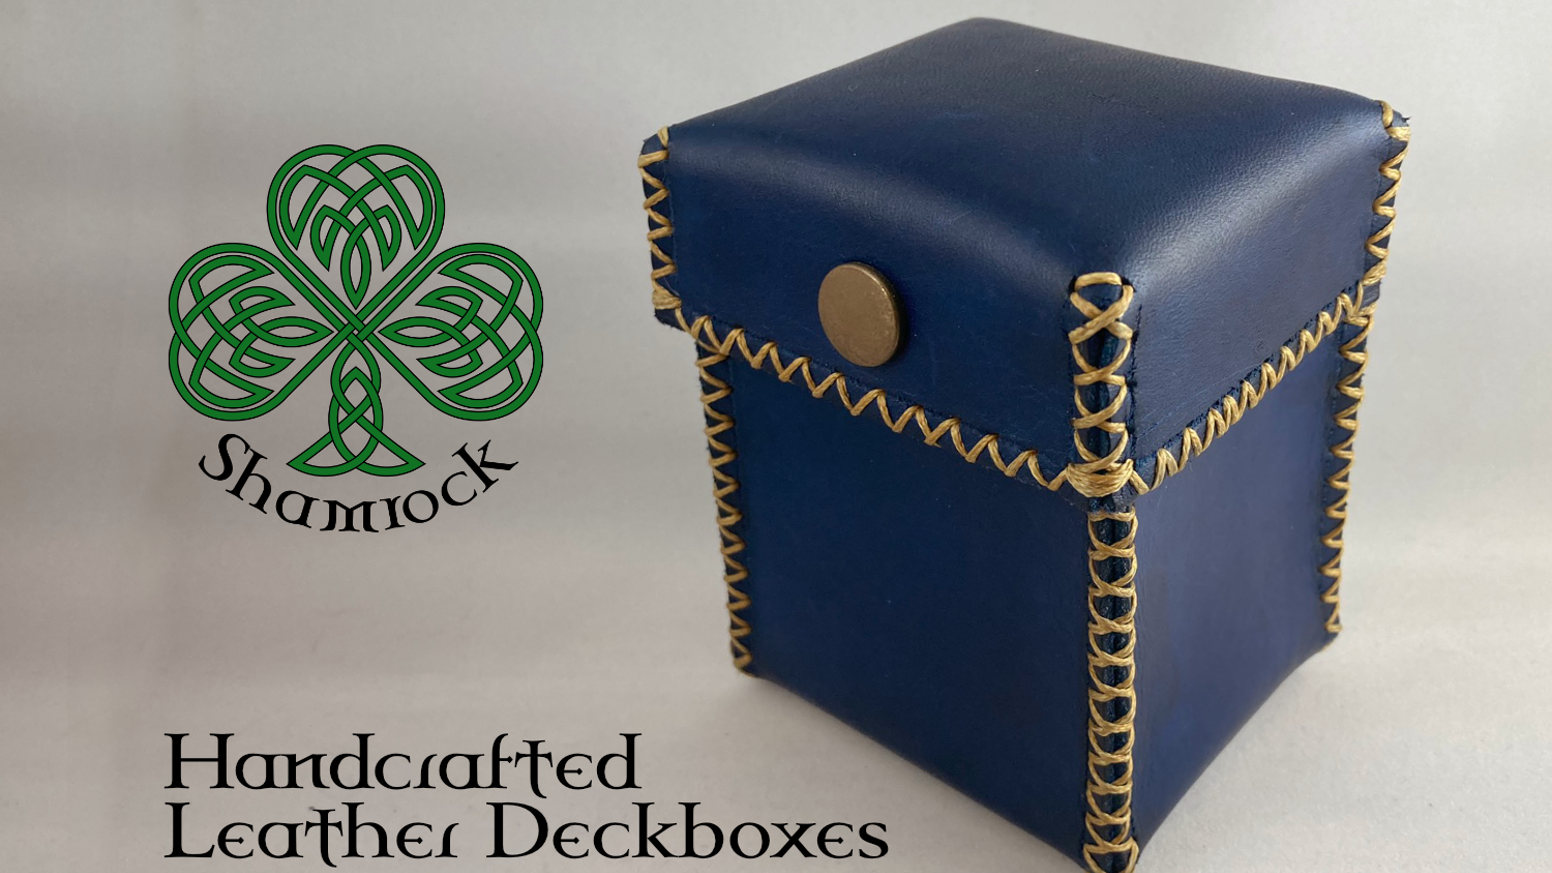 Handcrafted Leather Deckboxes for trading card games such as Magic the Gathering, Pokemon or YuGiOh!